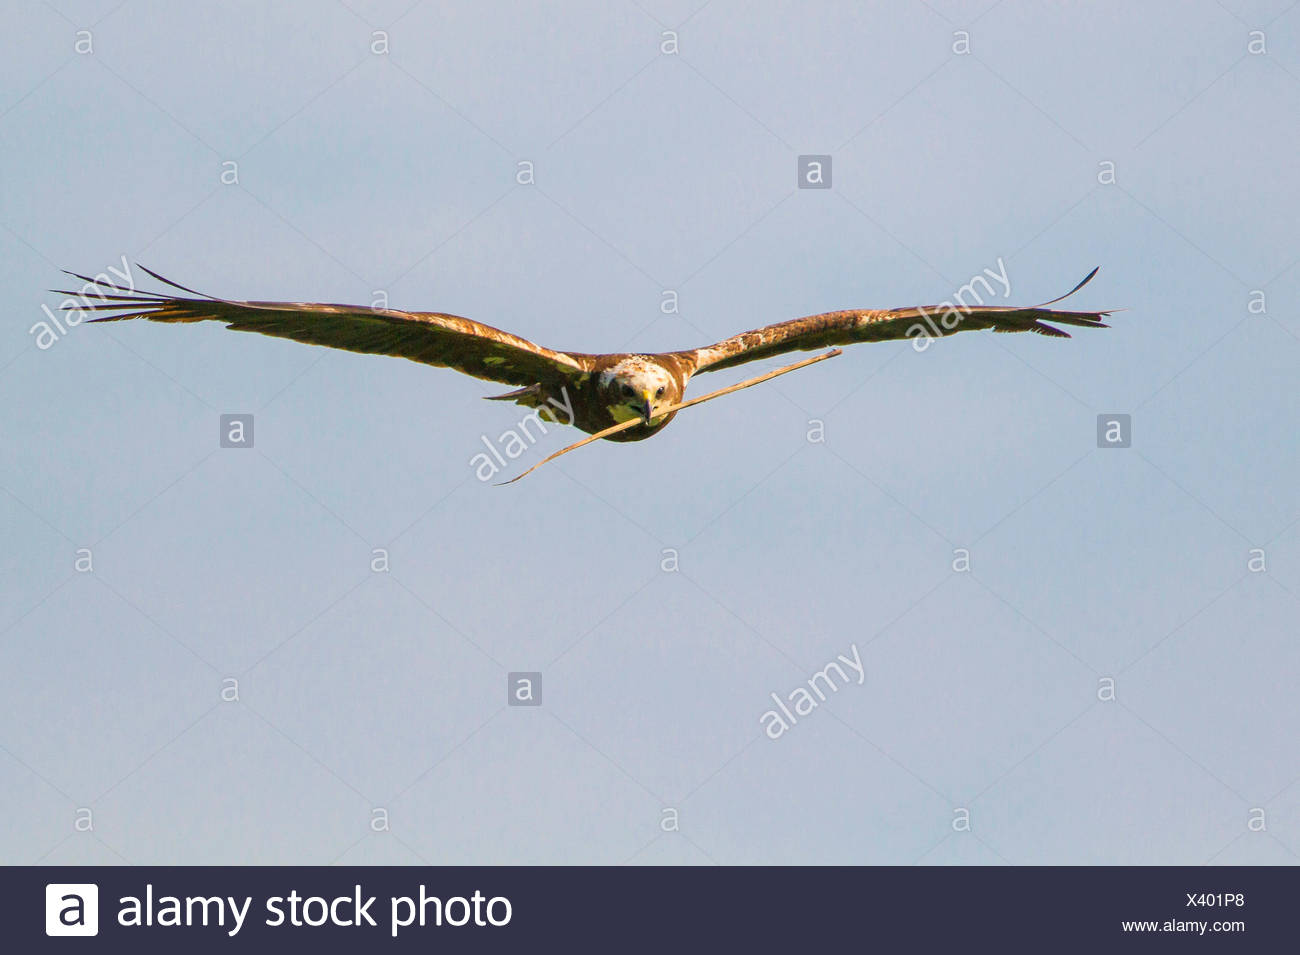 Western Marsh Harrier (Circus aeruginosus), female flying with nesting material in the bill, Germany, Bavaria, Oberbayern, Upper Bavaria Stock Photo